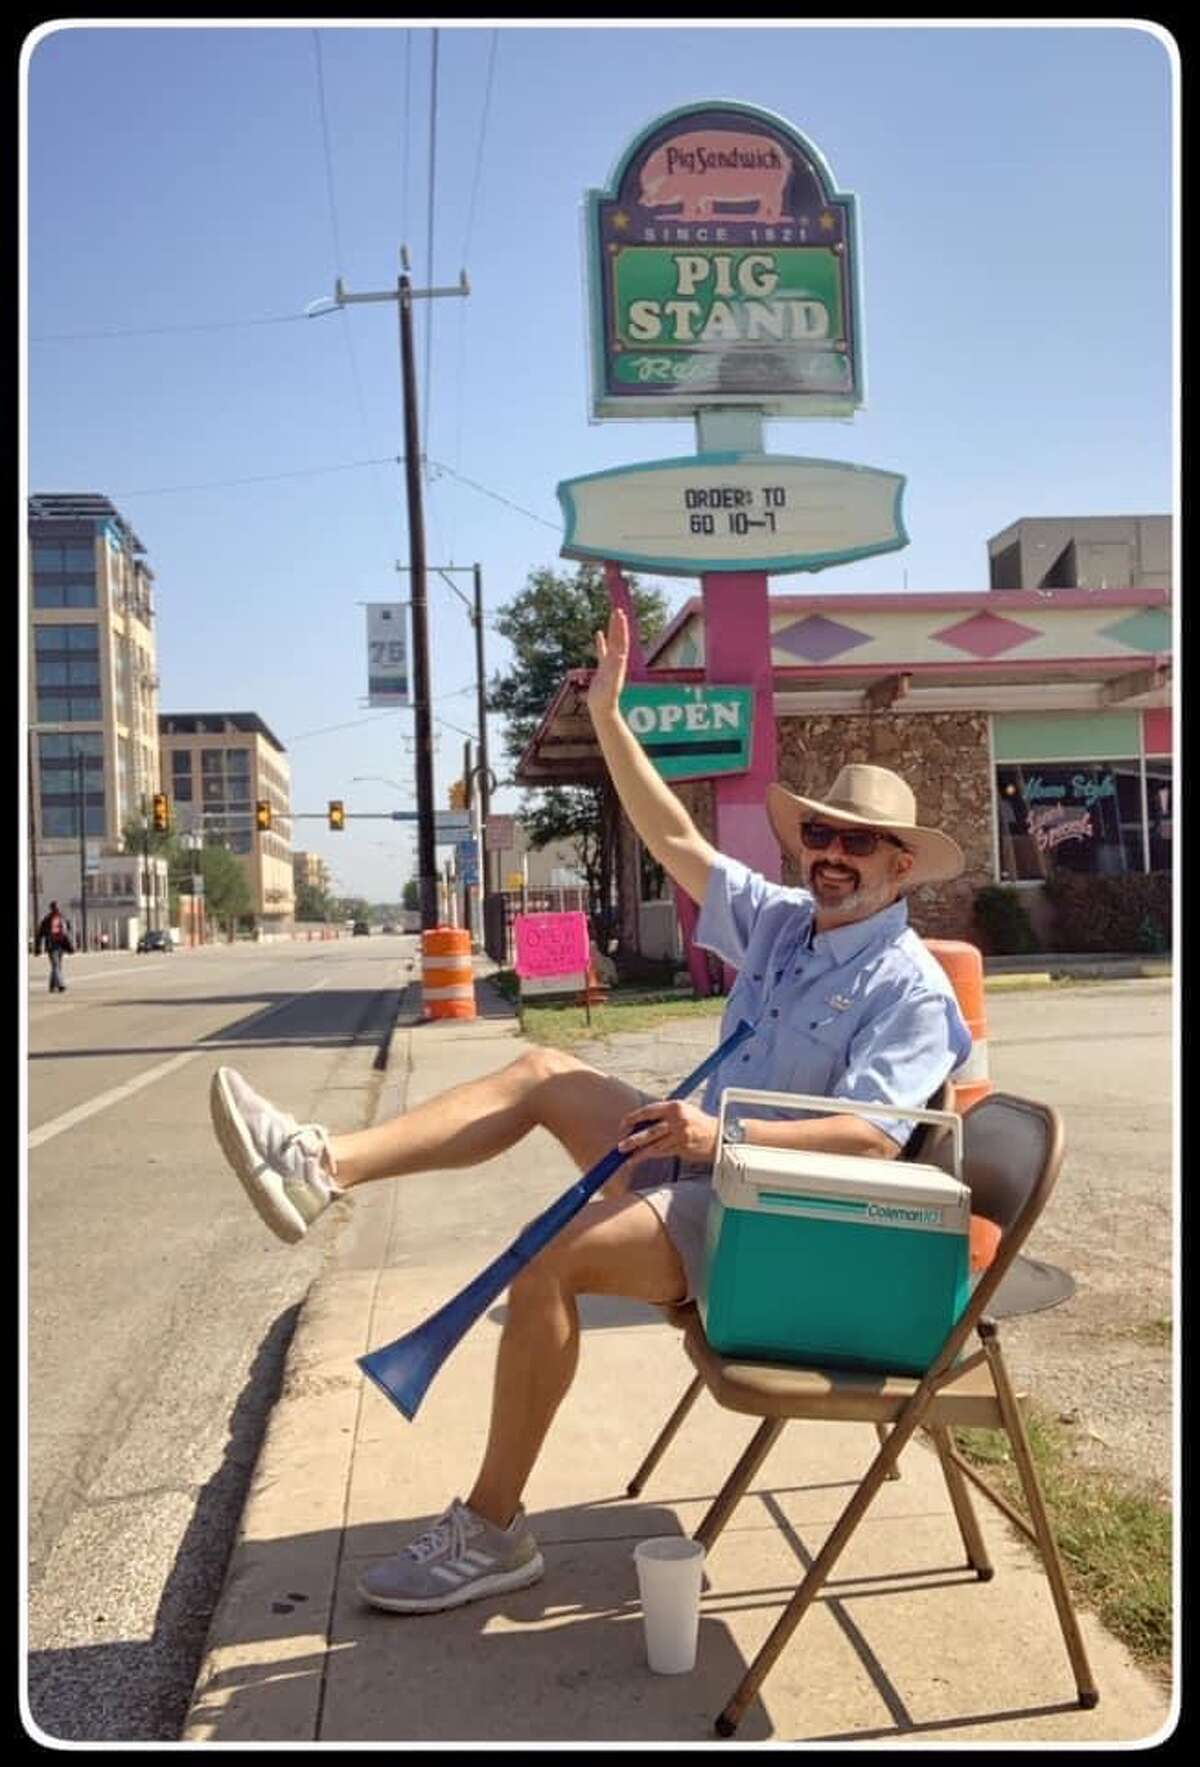 The solo Fiesta guy  Videos and photos showing Carlos R. Leos sitting alone on a Broadway sidewalk, as if the big parade was still happening, was one of many scenes he recreated to spread some Fiesta humor to his fellow San Antonians during the coronavirus crisis that ripped out the most important page in the city's social calendar. The avid Fiesta-goer dubbed the collection of viral posts